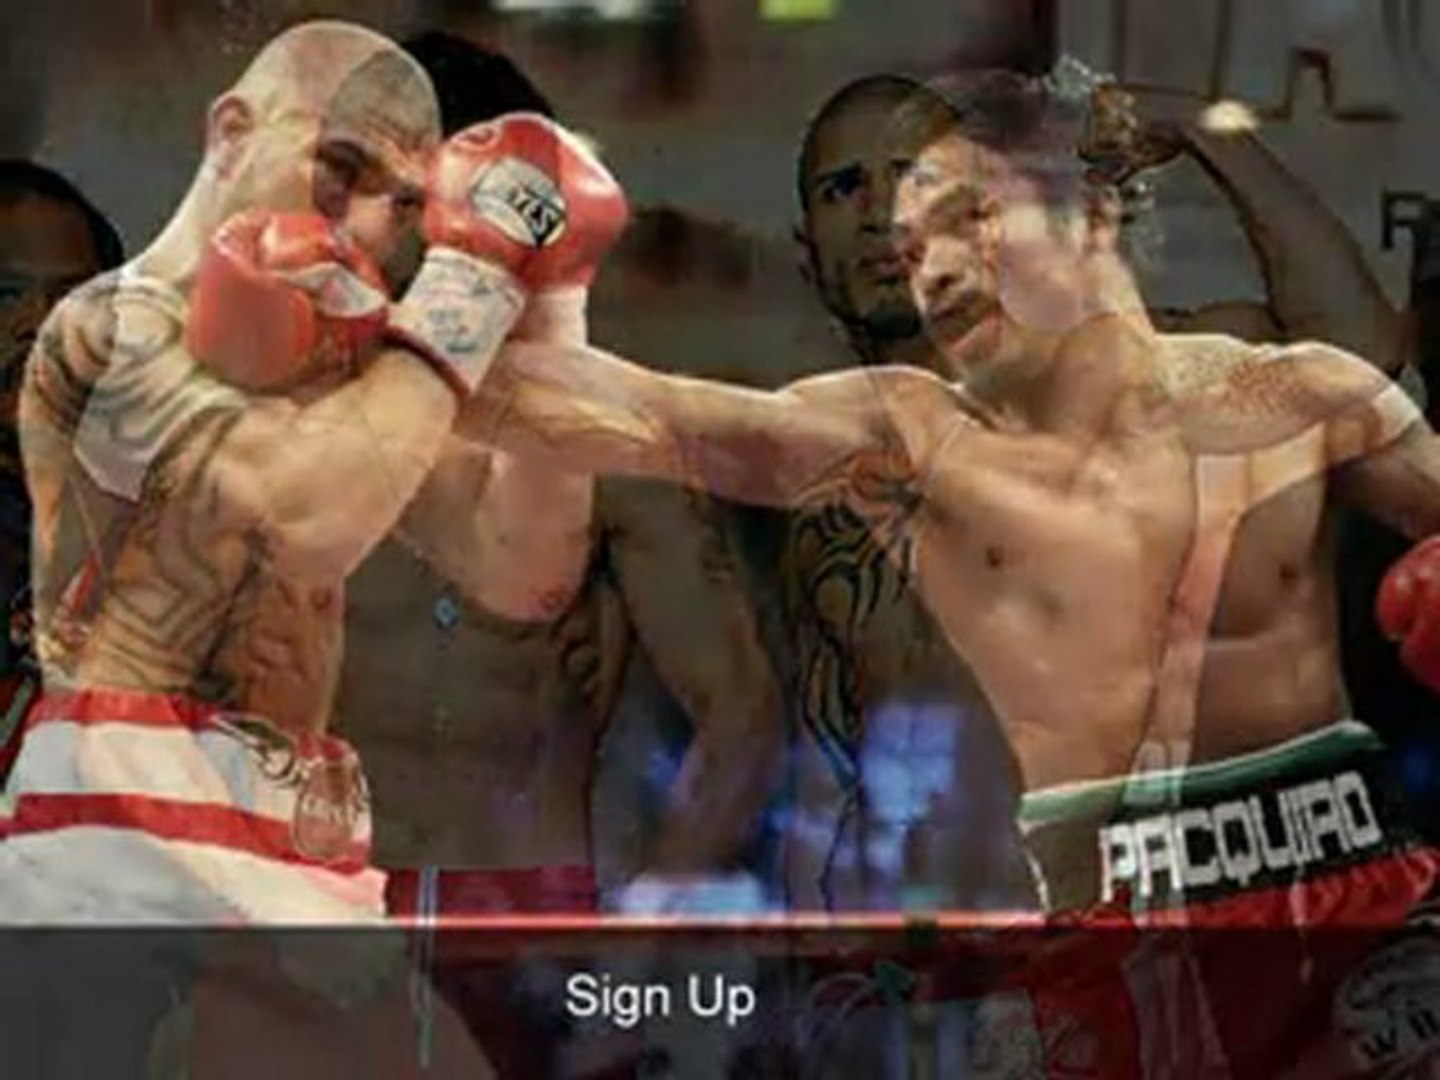 Evander vs Brian / Holyfield vs Nielsen Live Sopcast Big Boxing Punch:live OnShowtime Boxing PPV TV